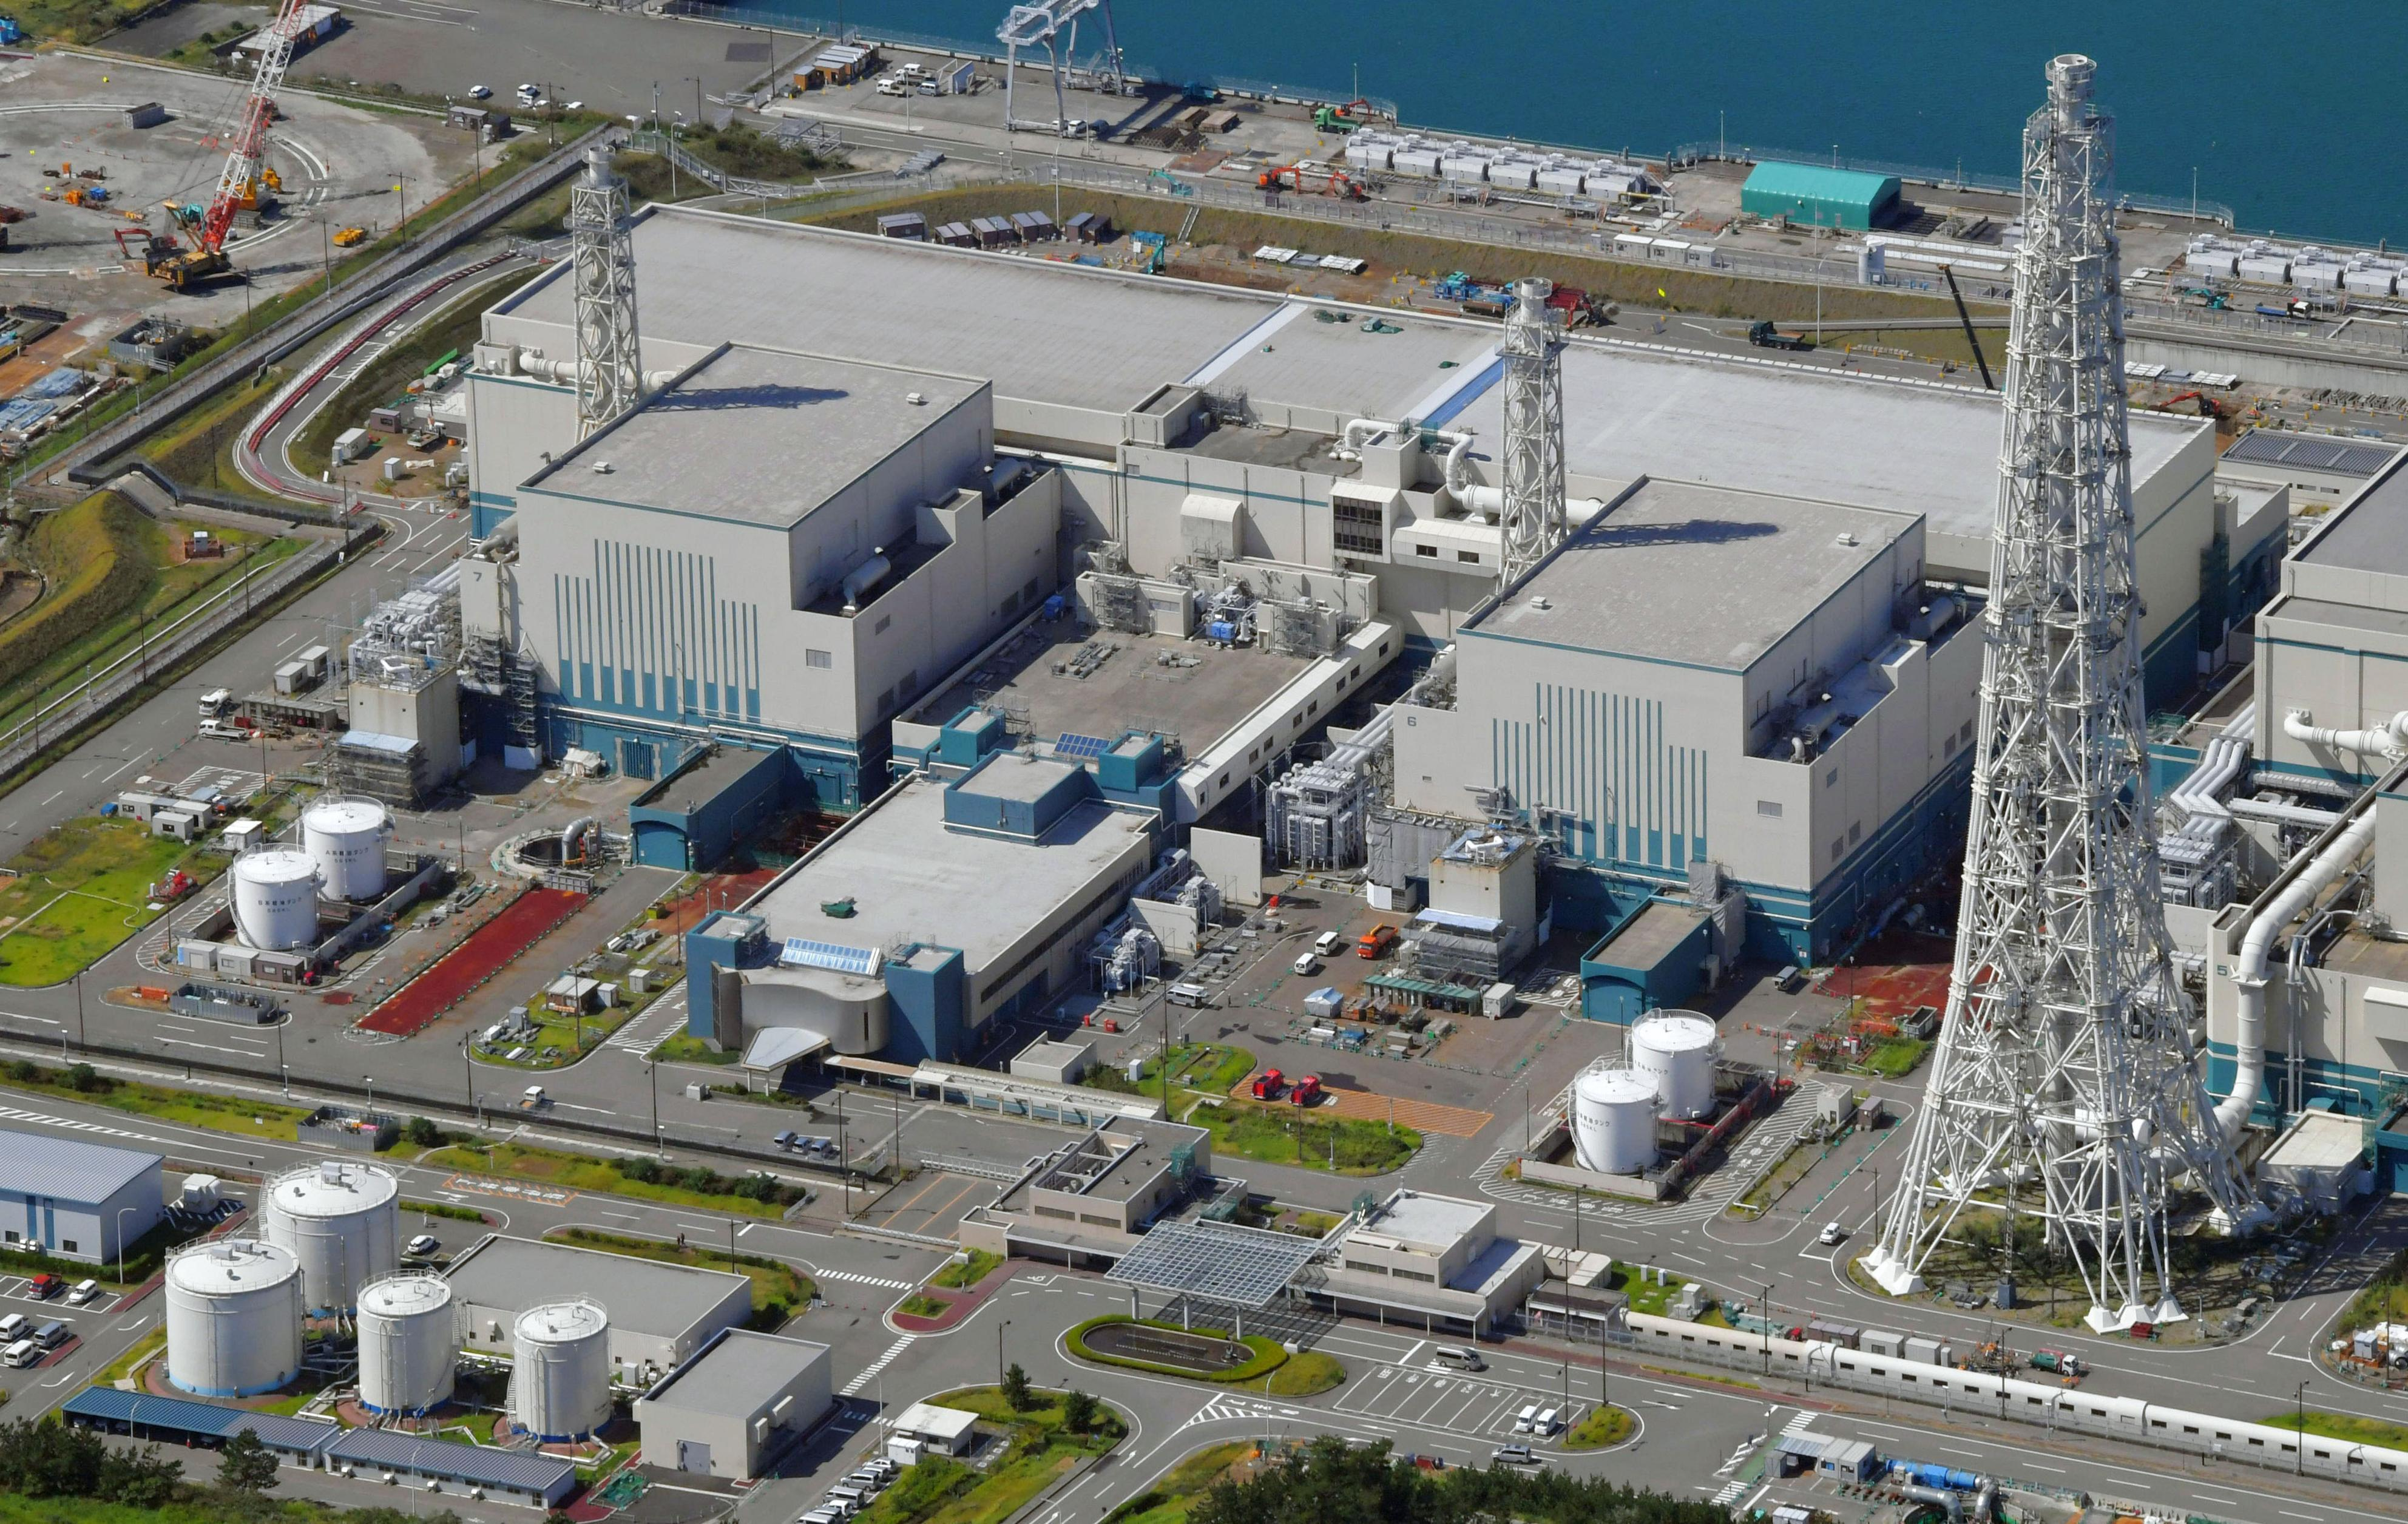 Japan Nuclear This Sept. 30, 2017 aerial photo shows the reactors of No. 6, right, and No. 7, left, at Kashiwazaki-Kariwa nuclear power plant, Niigata prefecture. Japanese nuclear regulators say two reactors run by the utility blamed in the Fukushima plant meltdowns have met their safety standards, saying the operator has since taken sufficient measures at another plant it owns. The Nuclear Regulation Authority unanimously approved Wednesday, Oct. 4, 2017, a draft certificate for No. 6 and No. 7 reactors at the plant in northern Japan operated by the Tokyo Electric Power Co. under stricter standards set after the 2011 Fukushima disaster. (Kyodo News via AP)